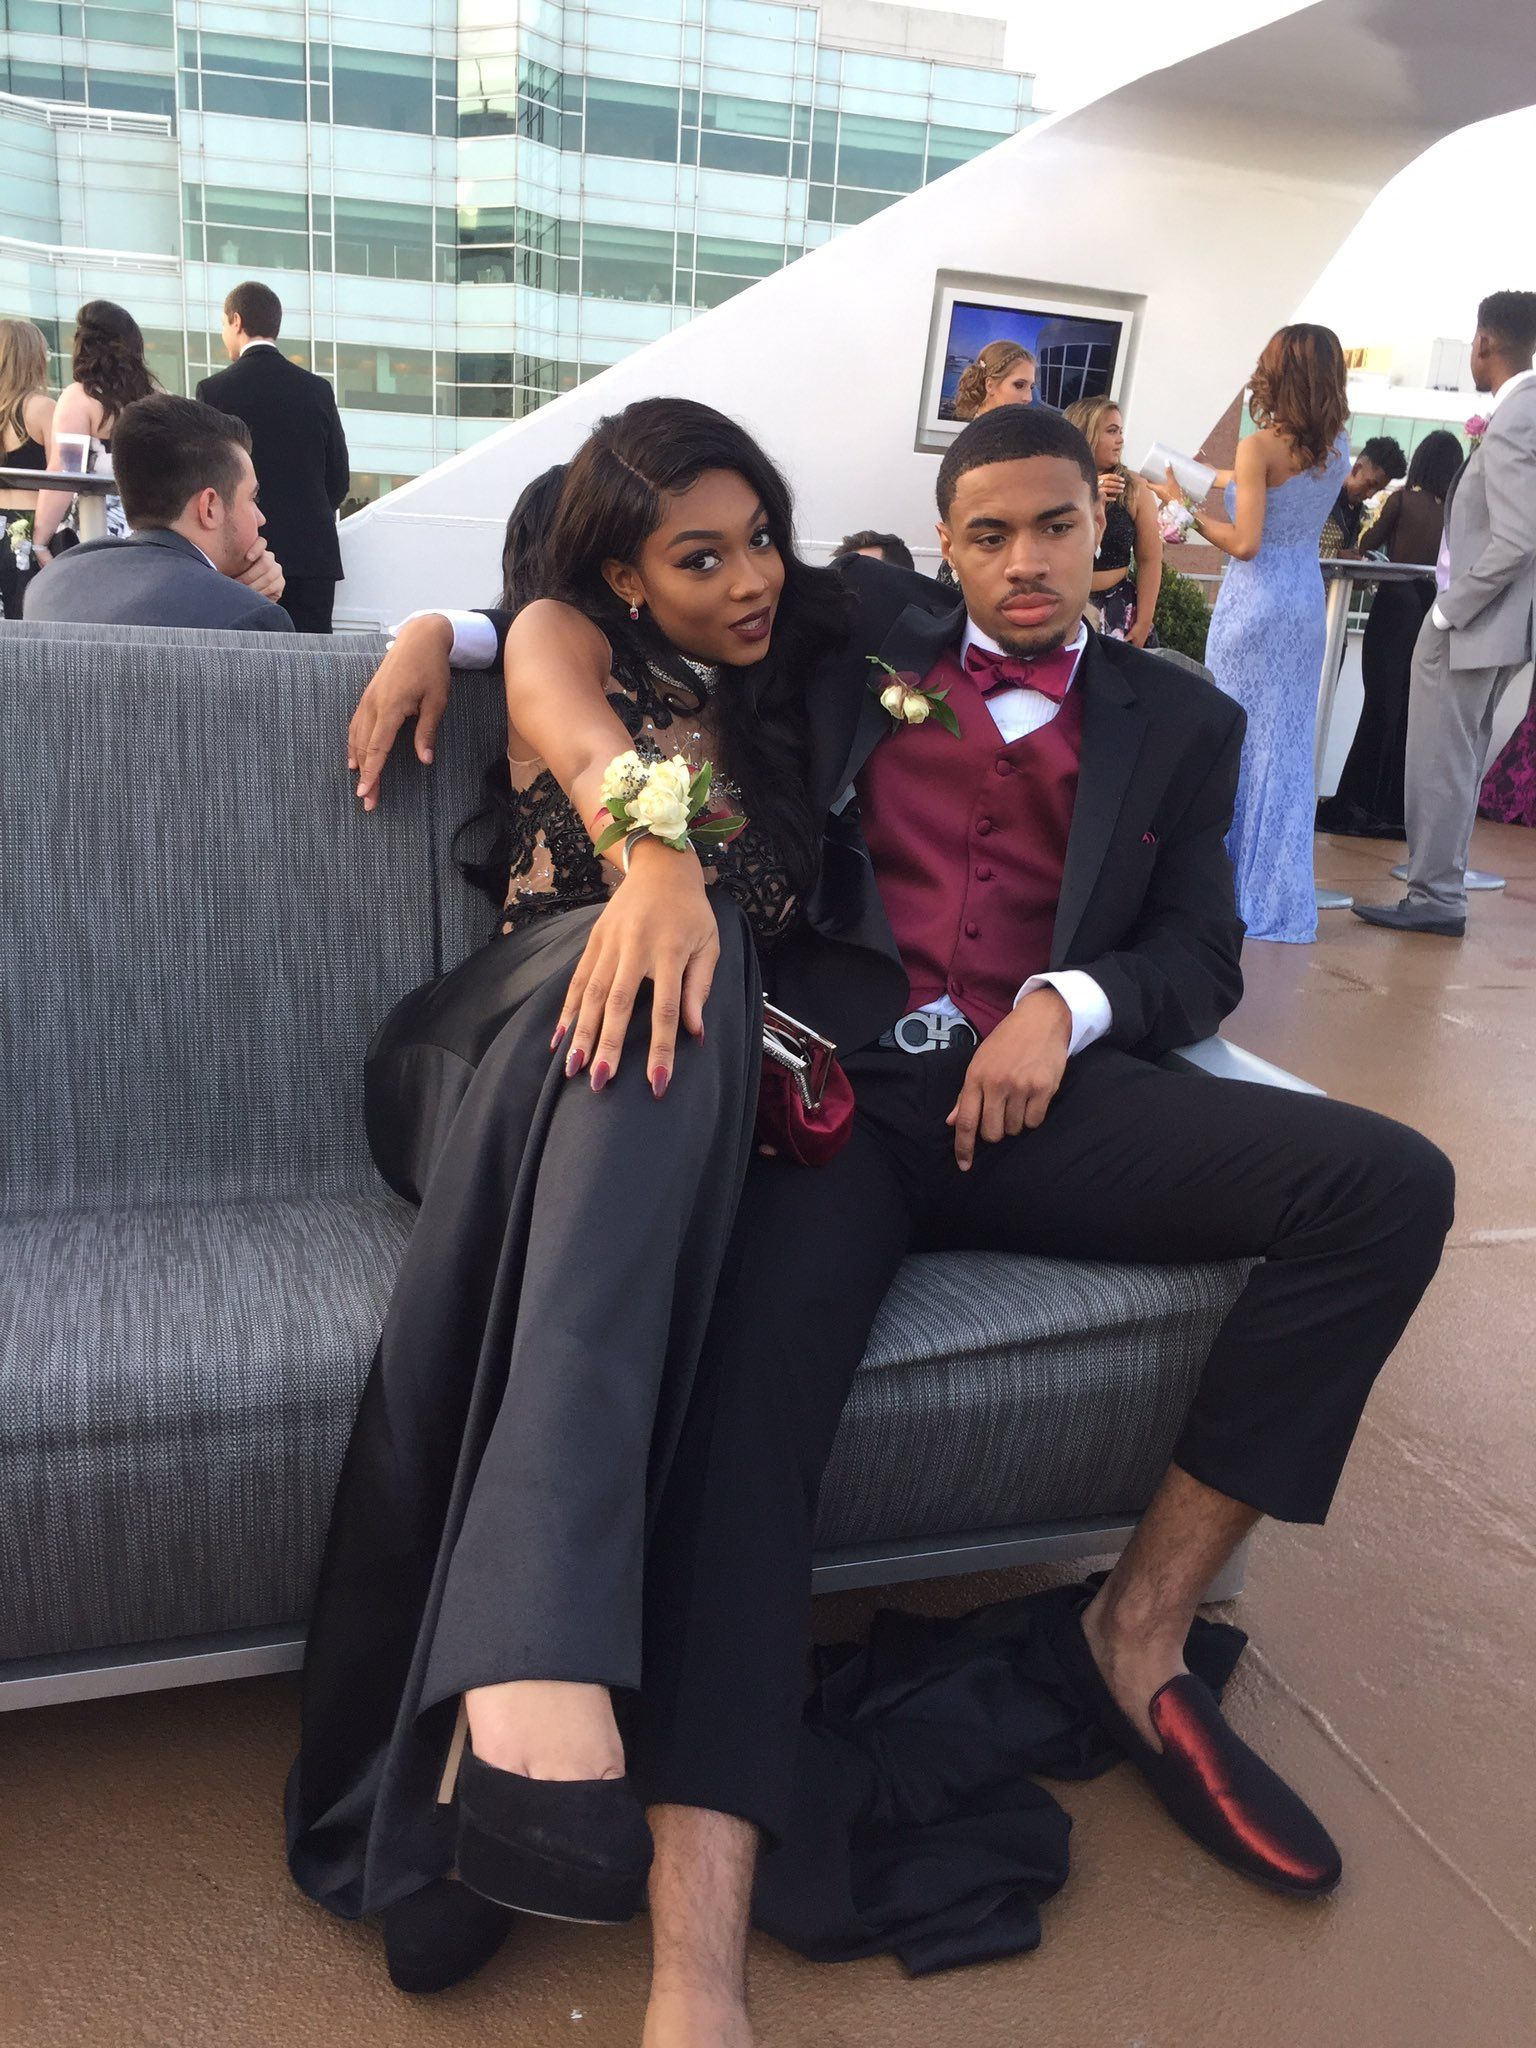 Pinterest : LiddoBlanco  Prom outfits, Prom outfits for guys